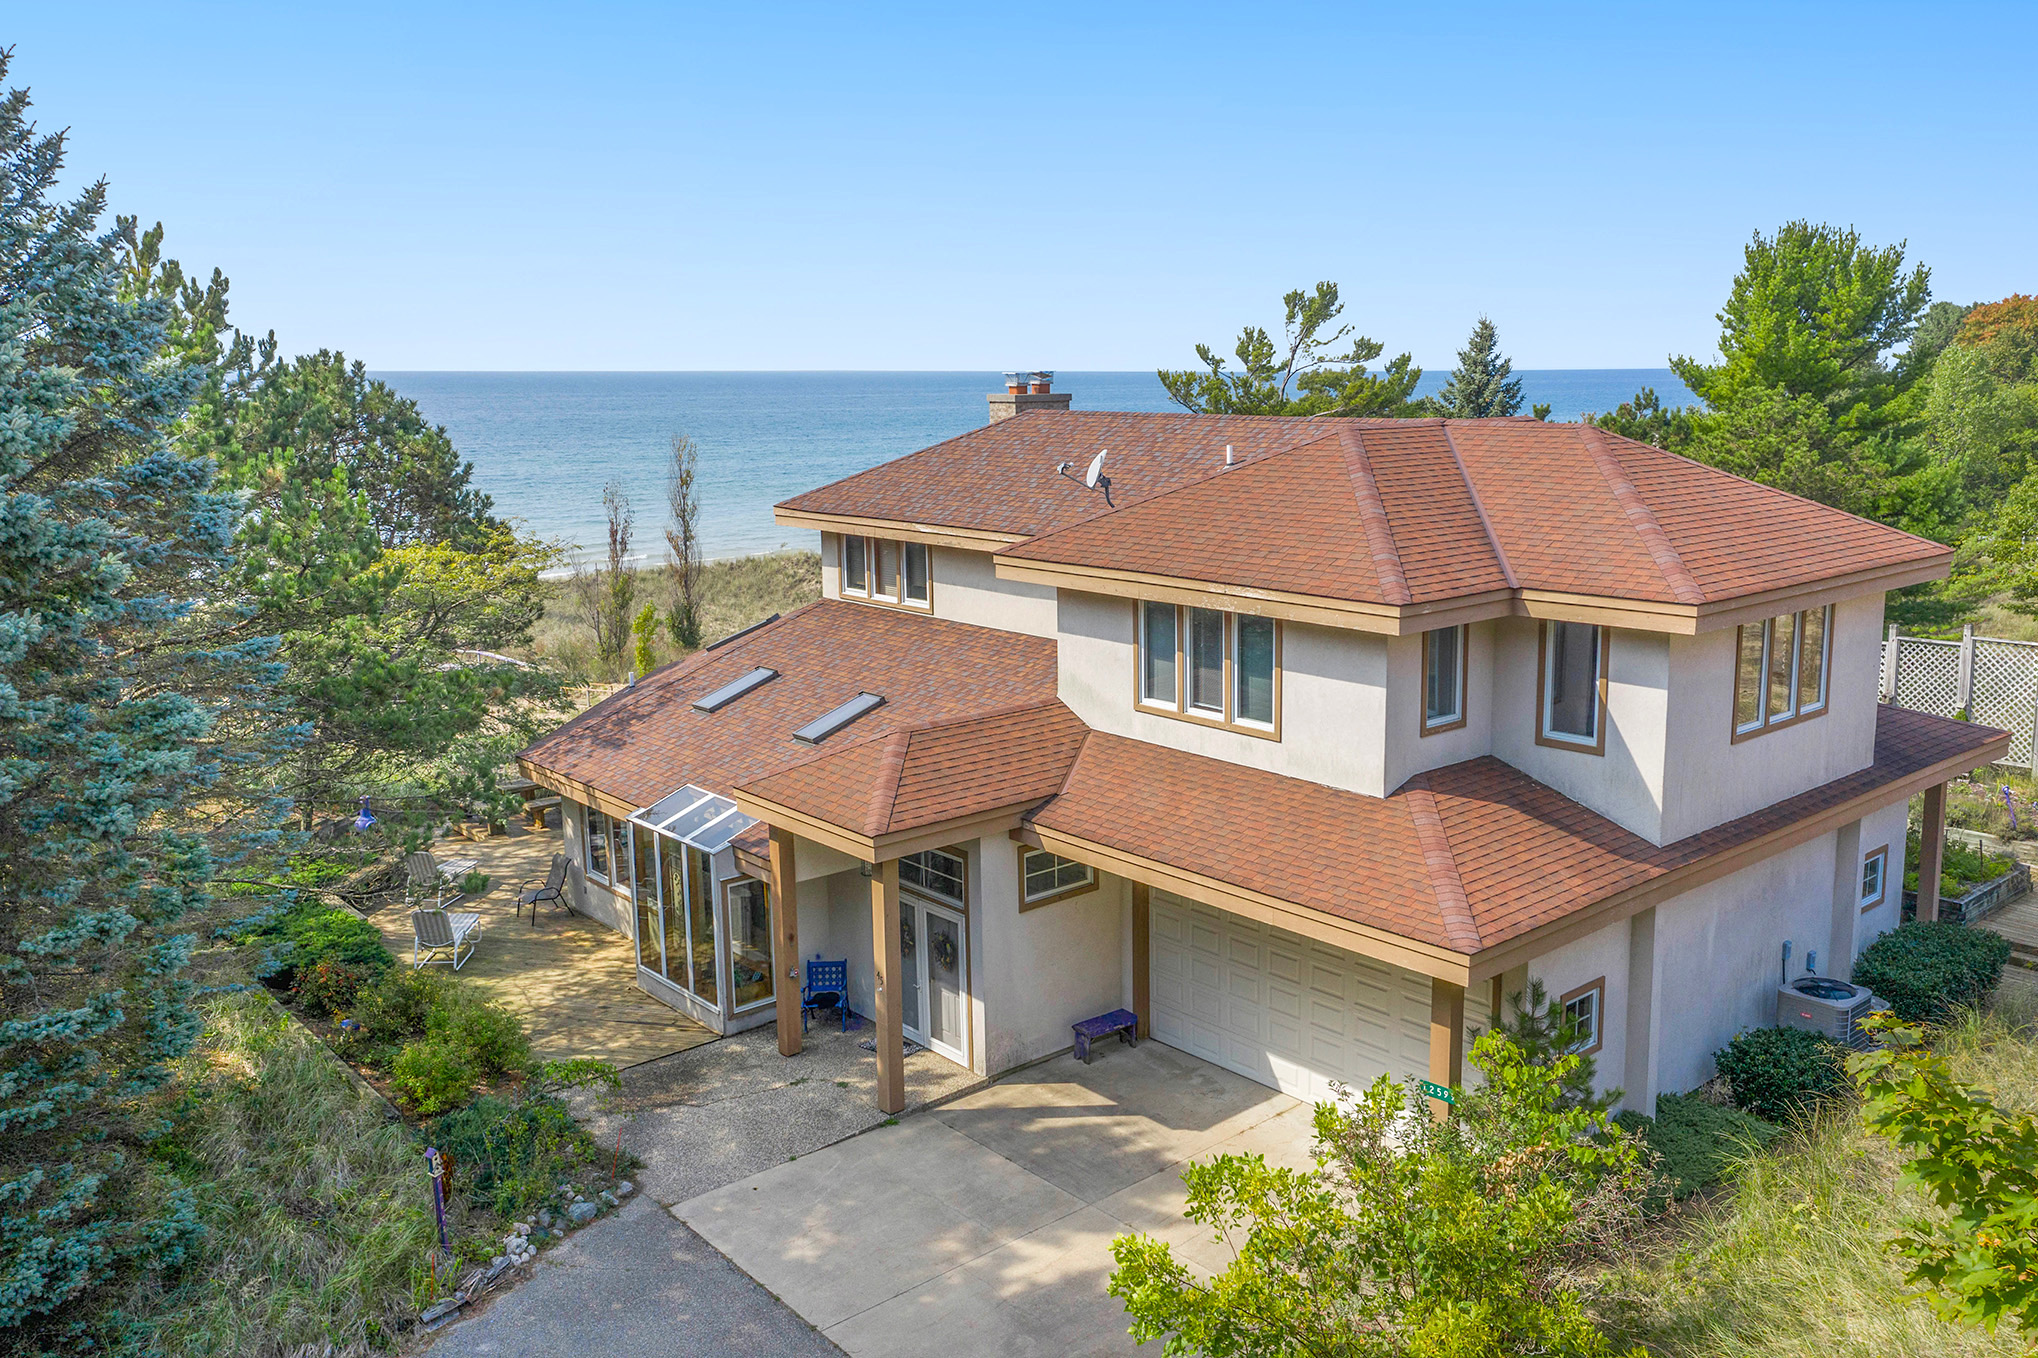 SHORT TERM 12/1 to 4/30/2022 Lakeside Beach Home in Grand Haven